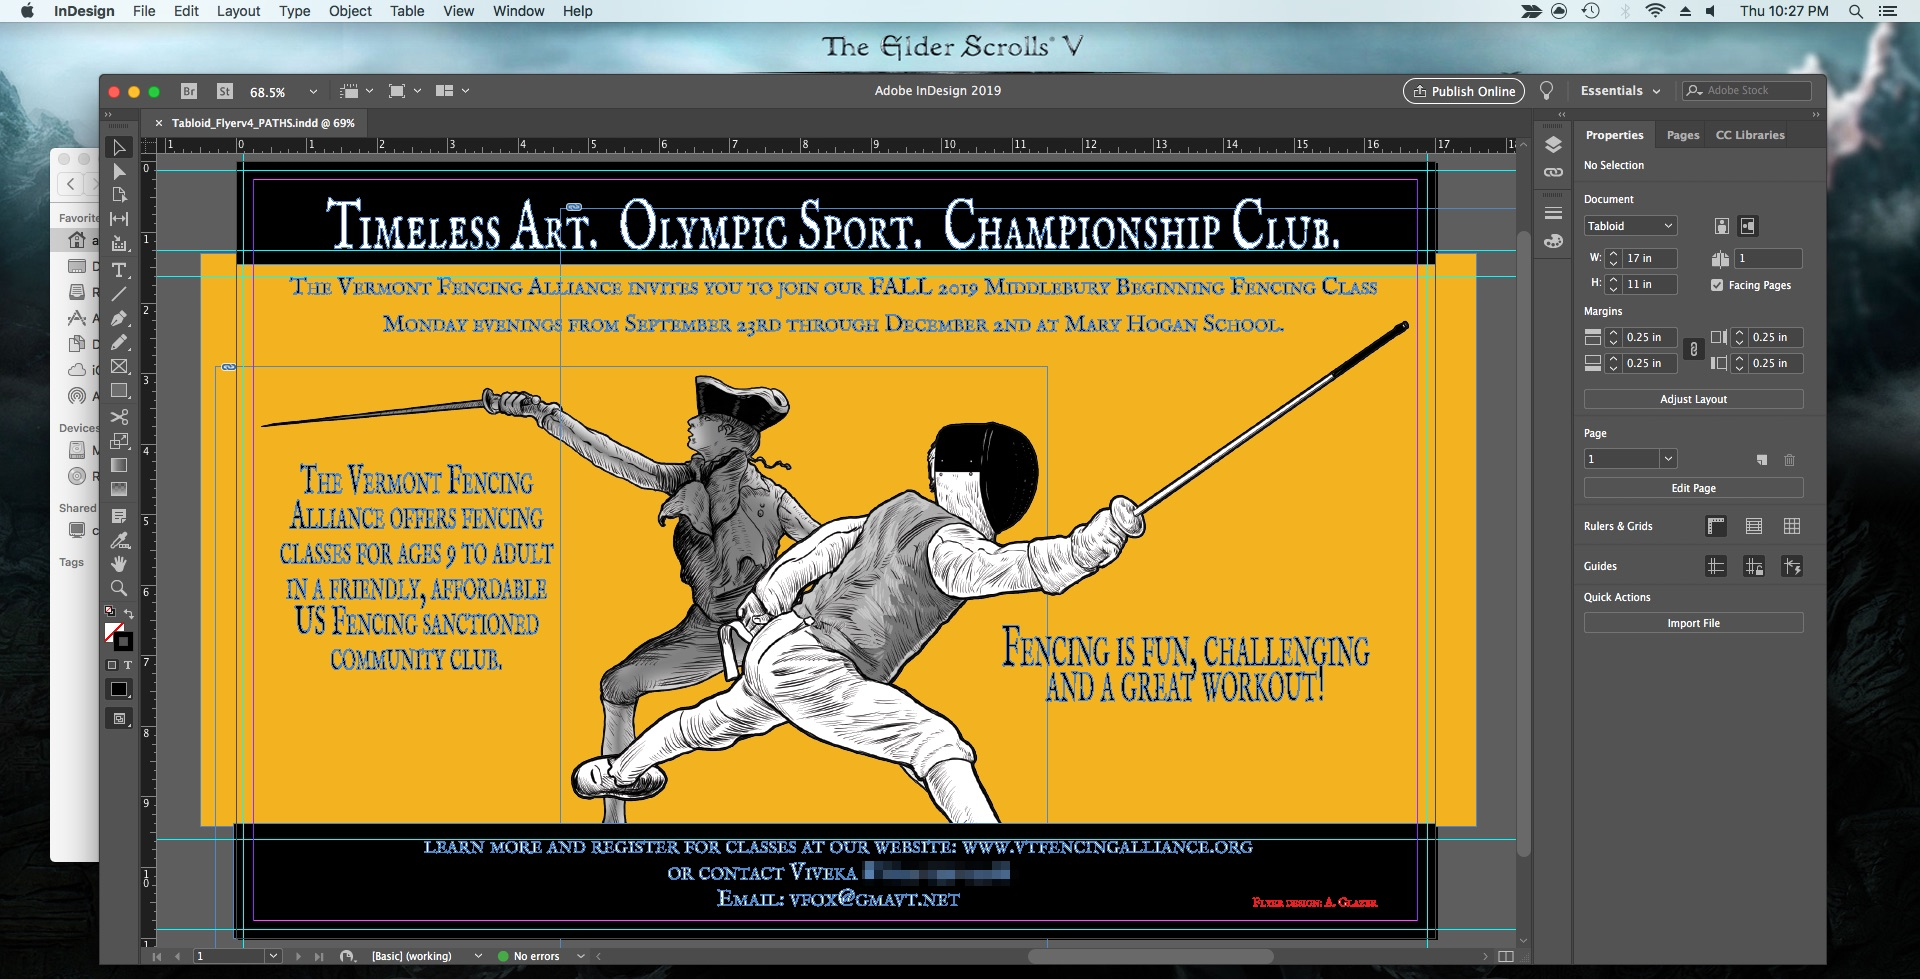 Adobe InDesign CC which I swear by when it comes to document layout design ( and yes, that's the latest flyer I've done for the fencing club ).